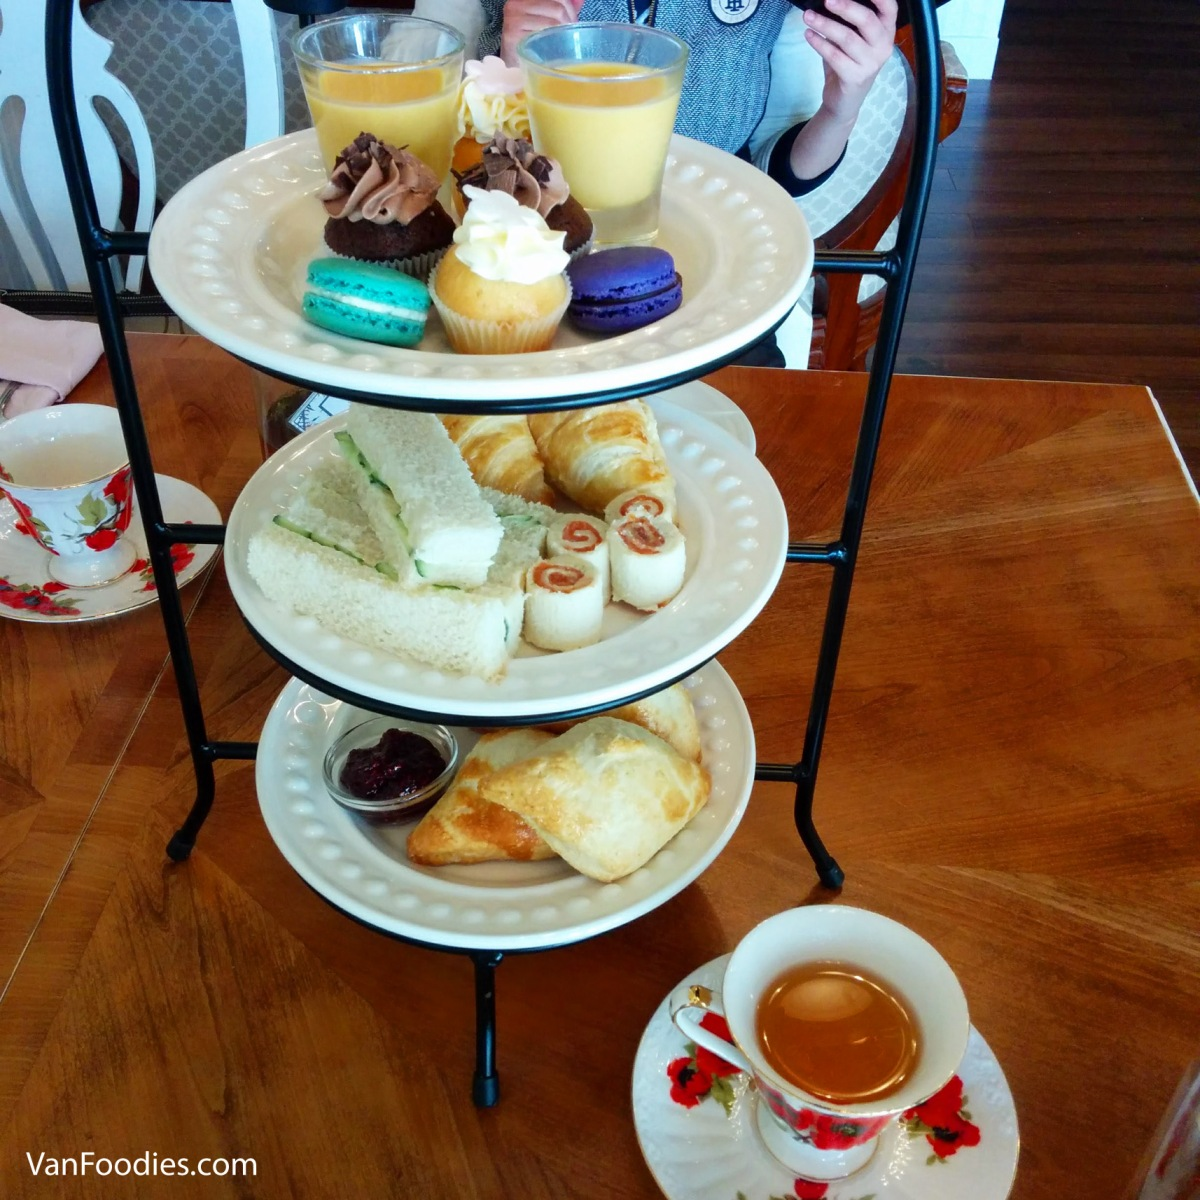 Cakes n Sweets Bakery - Hidden Gem for Afternoon Tea